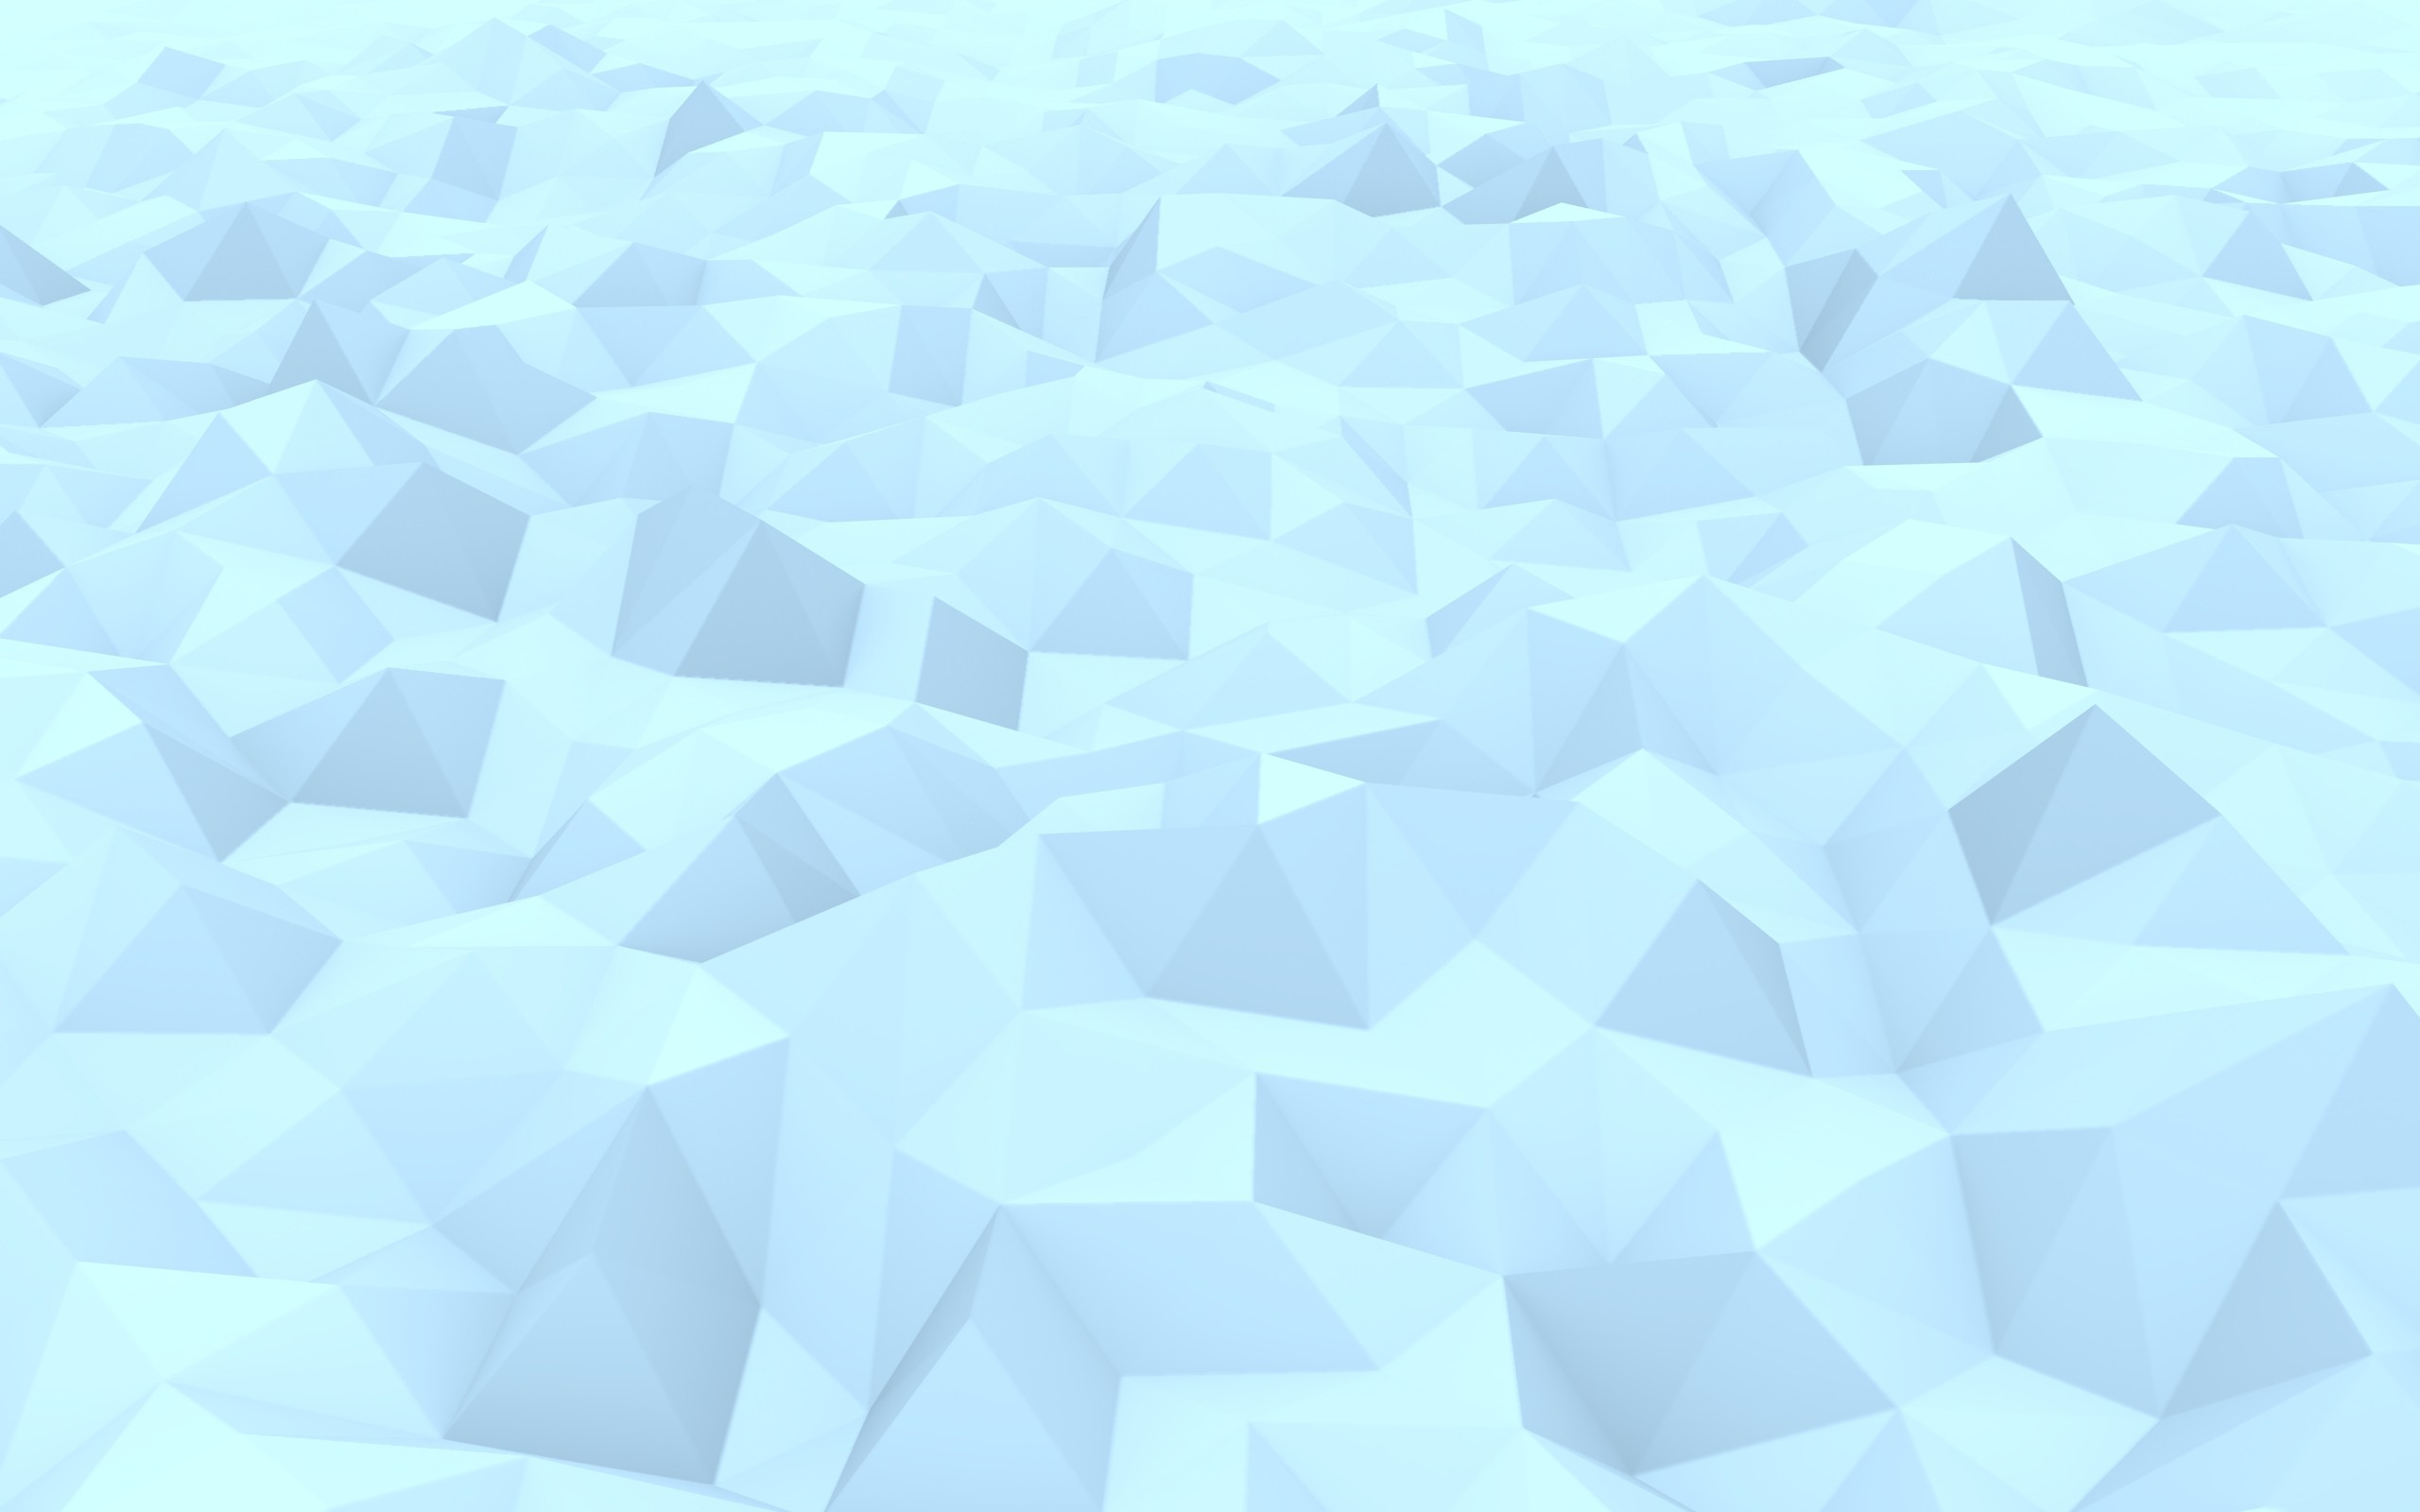 Iphone X Off White Wallpaper Low Poly Background 183 ① Download Free Full Hd Wallpapers